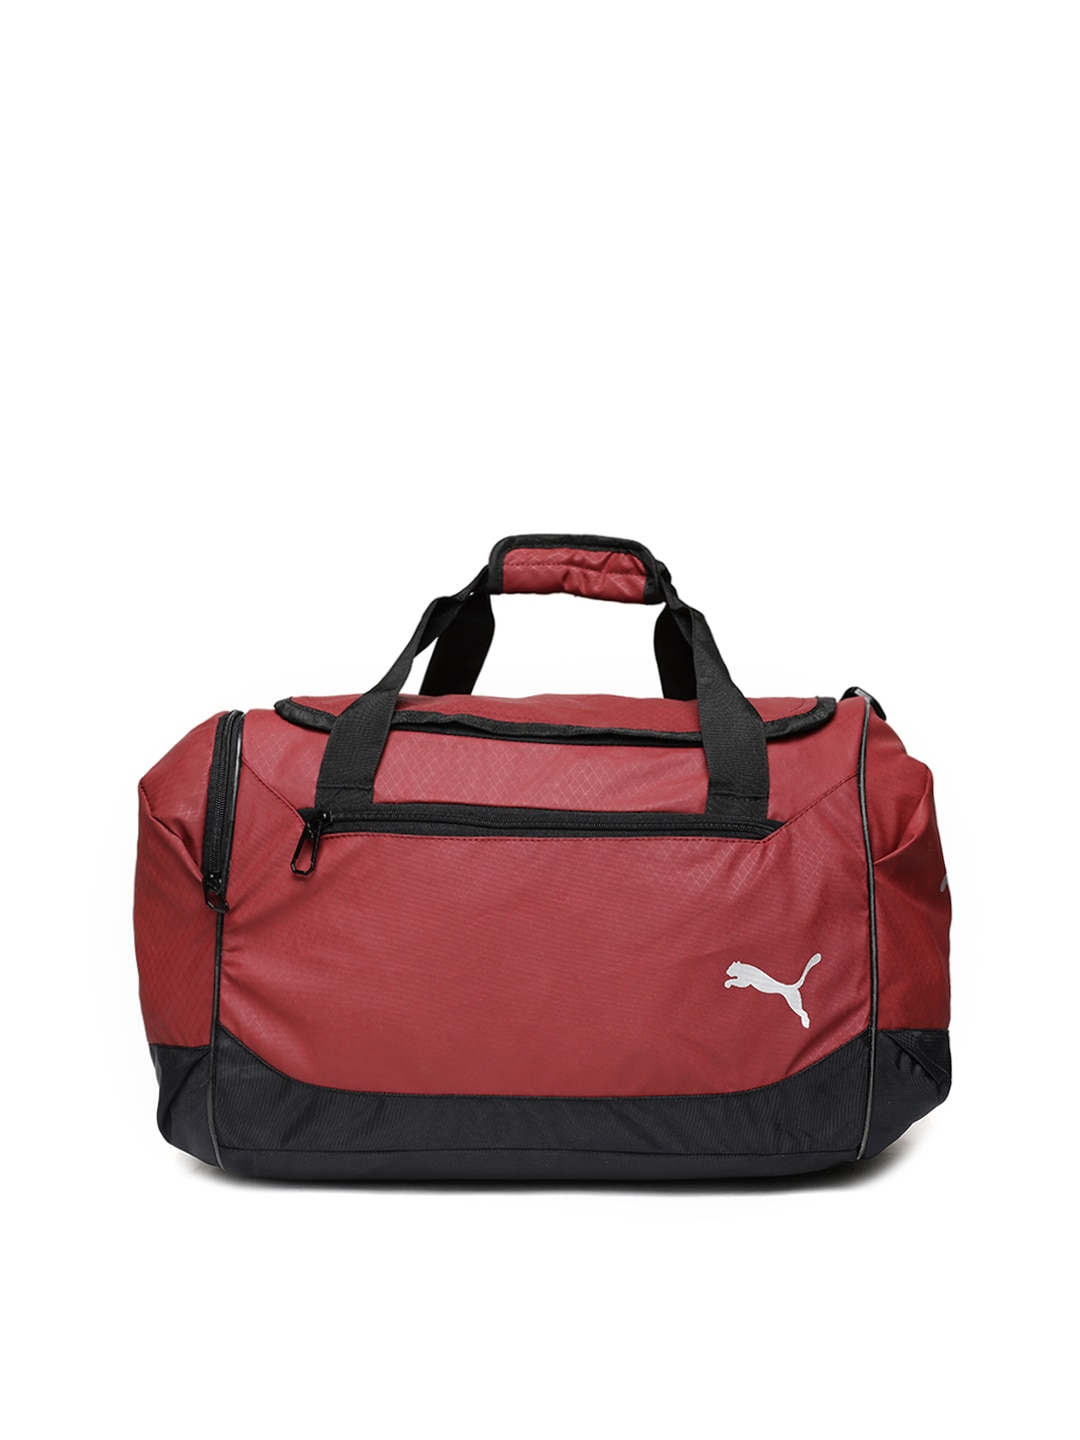 08bb3367c3b5 Women Gym Bags - Buy Women Gym Bags online in India